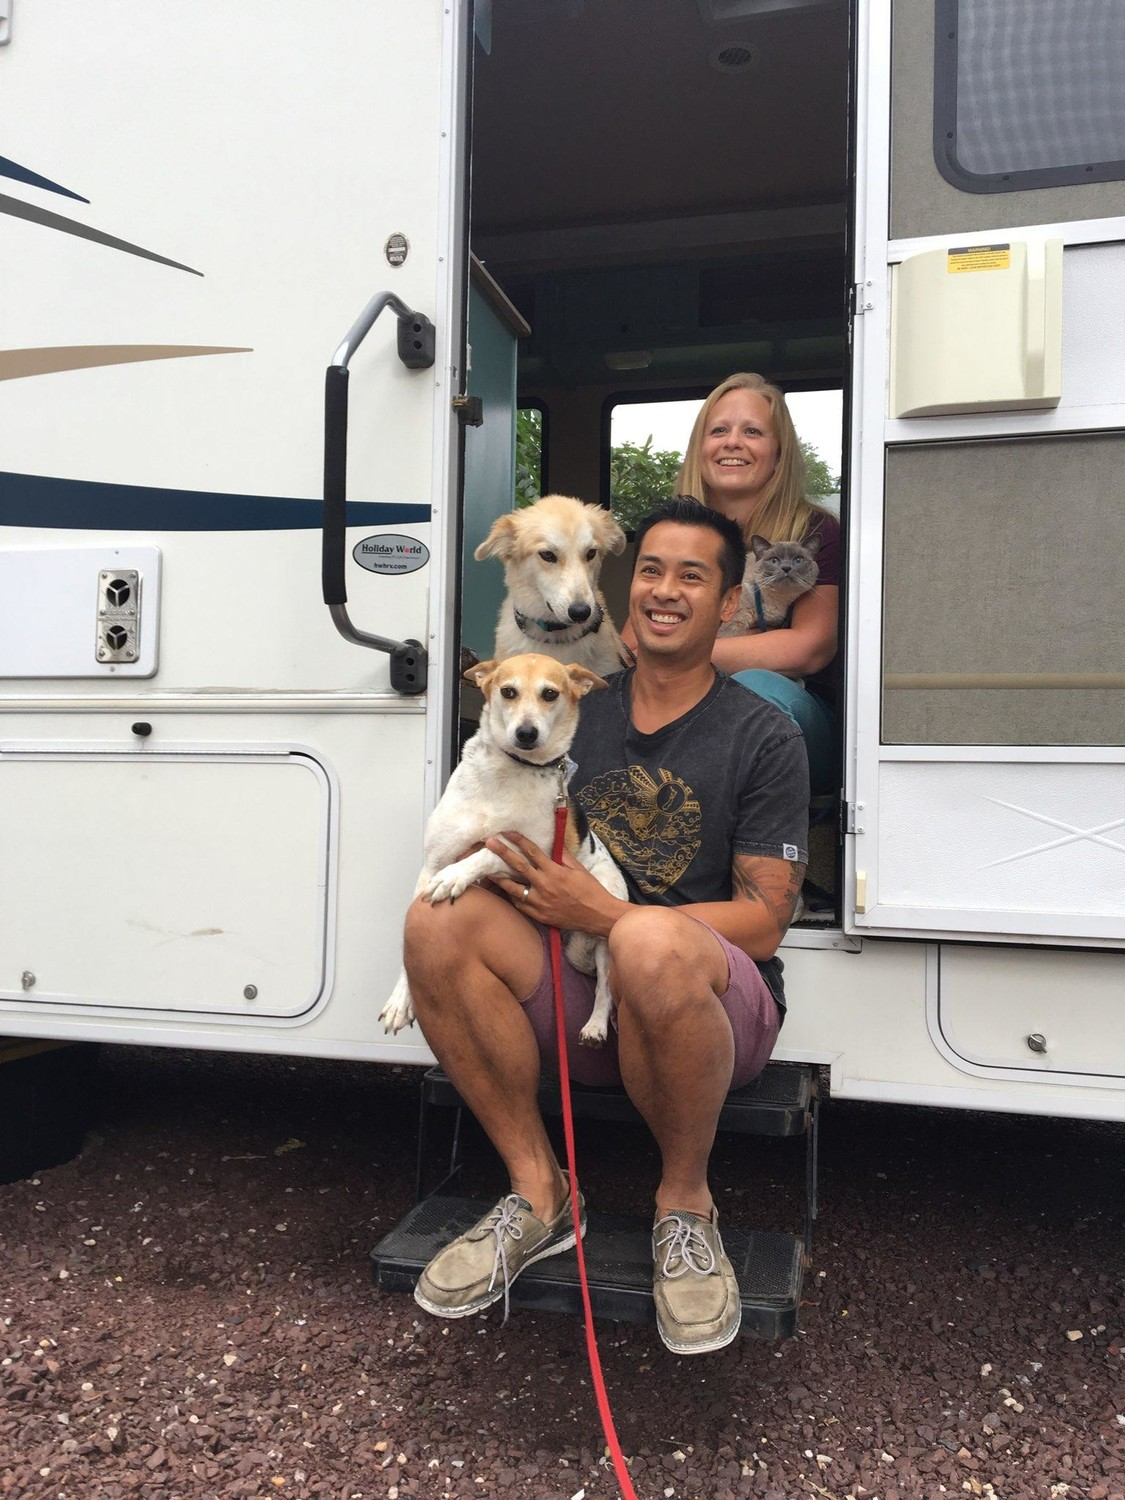 Kevin and Ashley will be traveling with their pets and a Jeep for easier on-site transportation. They began their journey on Oct. 29.